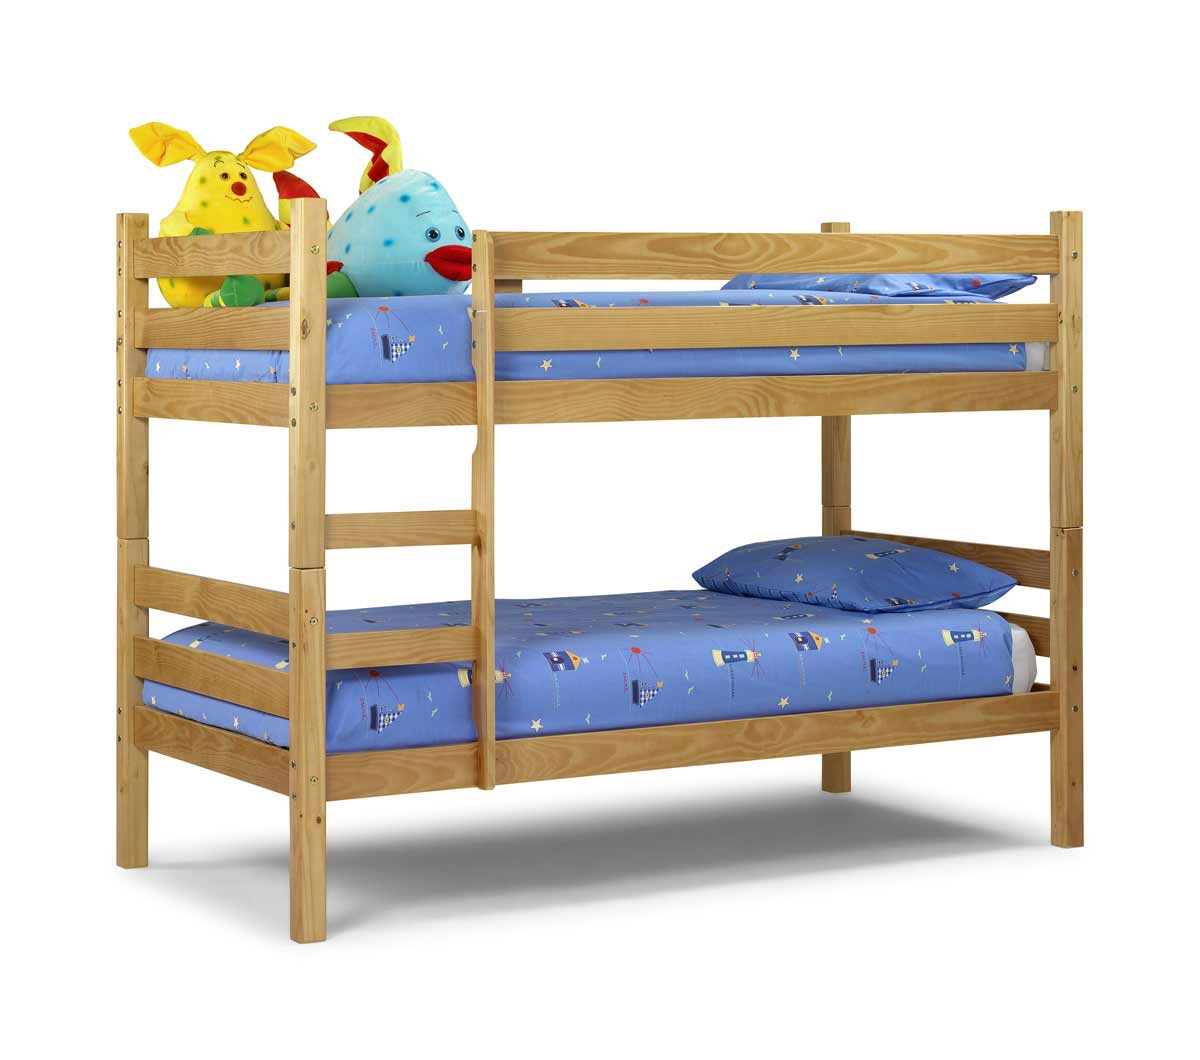 Wyoming Kids Wooden Bunk Bed